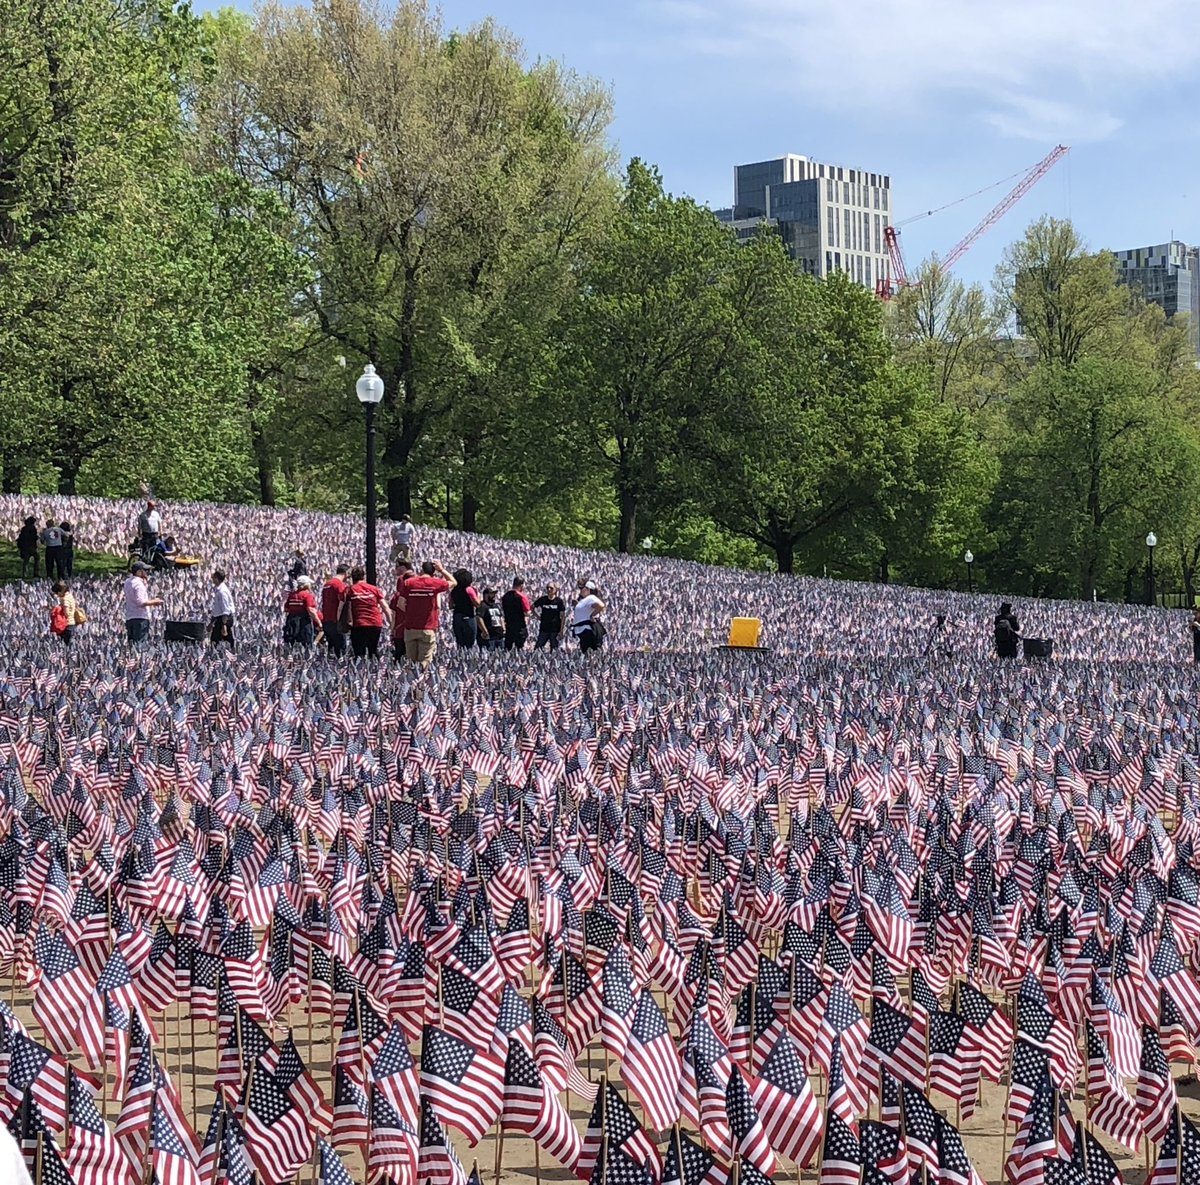 It's Memorial Day Weekend. In honor to those who have paid the ultimate price. #HeroesFlagGarden   Please take a moment to reach out to a veteran and check in. #veteransuicide https://t.co/fylNhxbVcY https://t.co/hnuA8Ja4e1